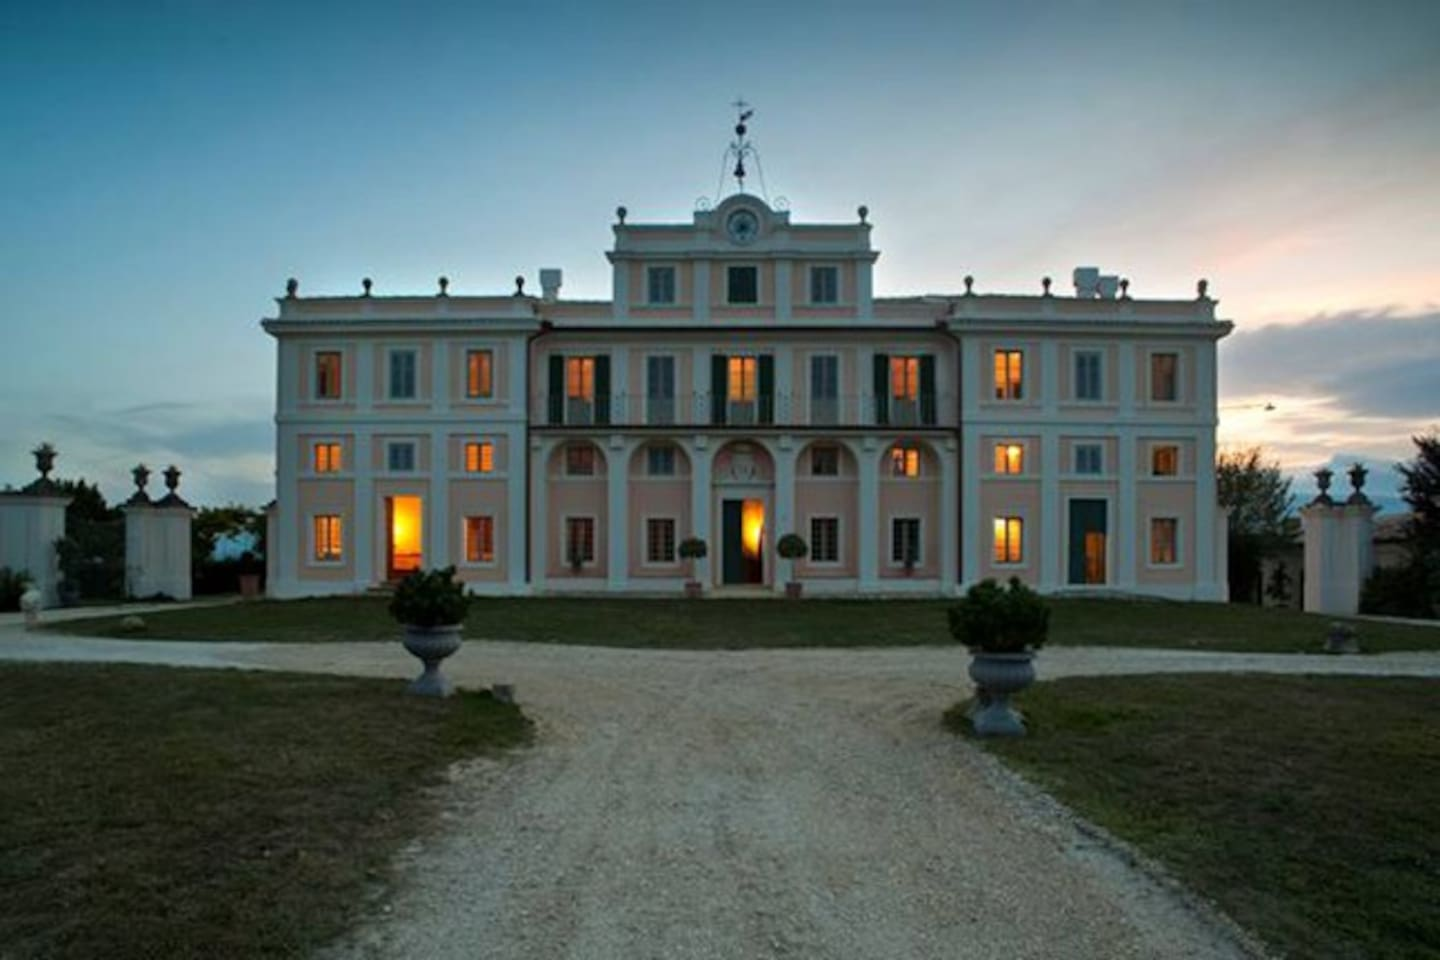 The Villa at Sunset